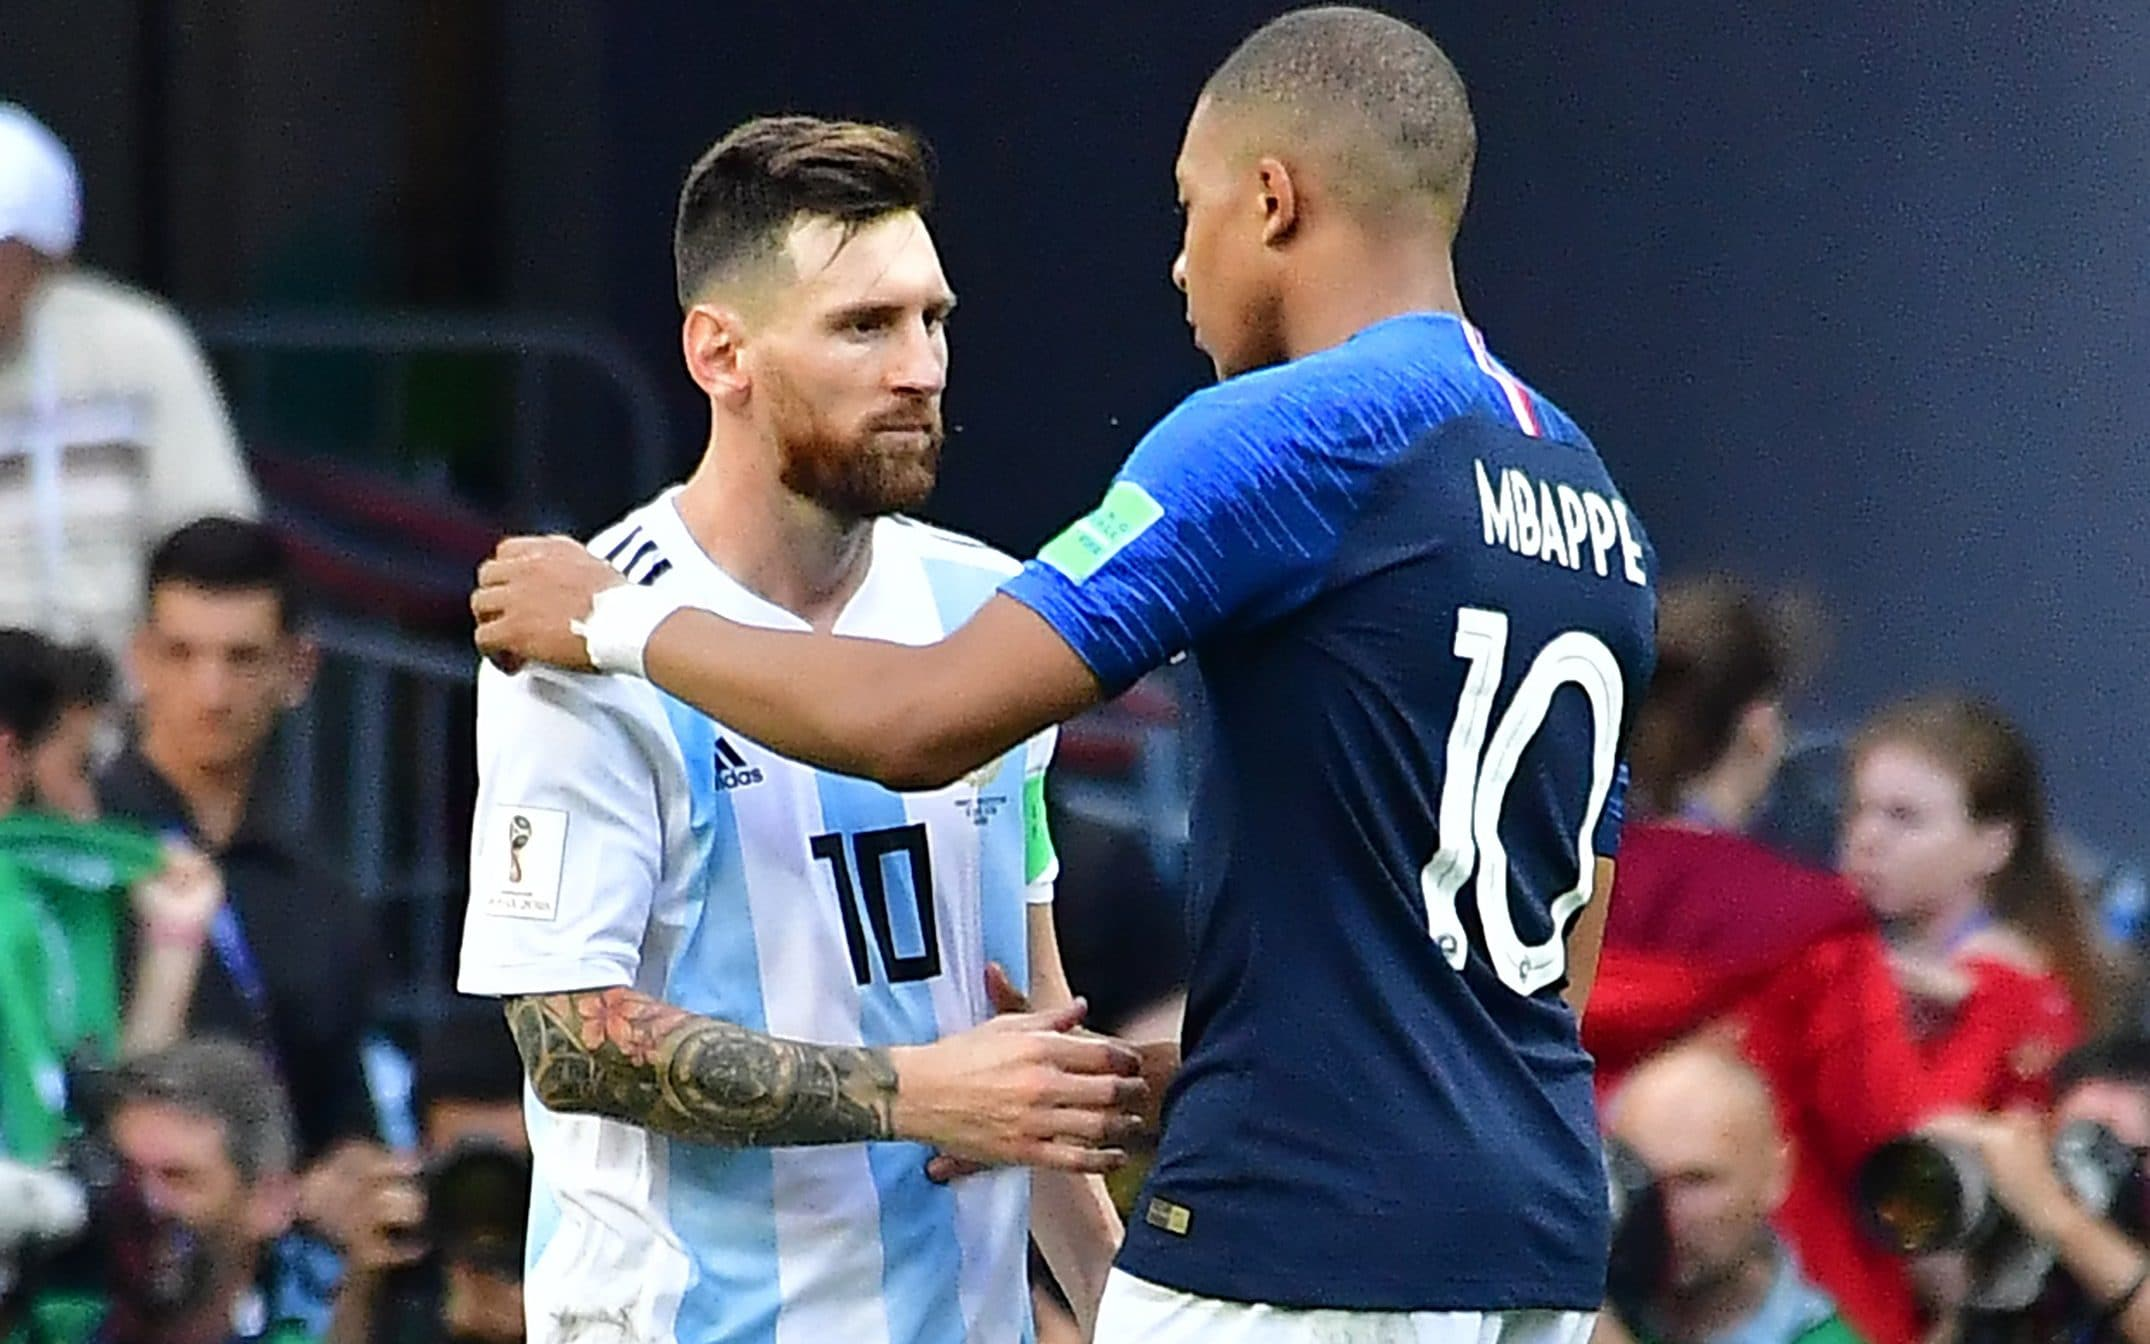 Grounded Kylian Mbappe will go all the way to the very top of the game Argentina s forward Lionel Messi congratulates France s forward Kylian  Mbappe  R  at the end of